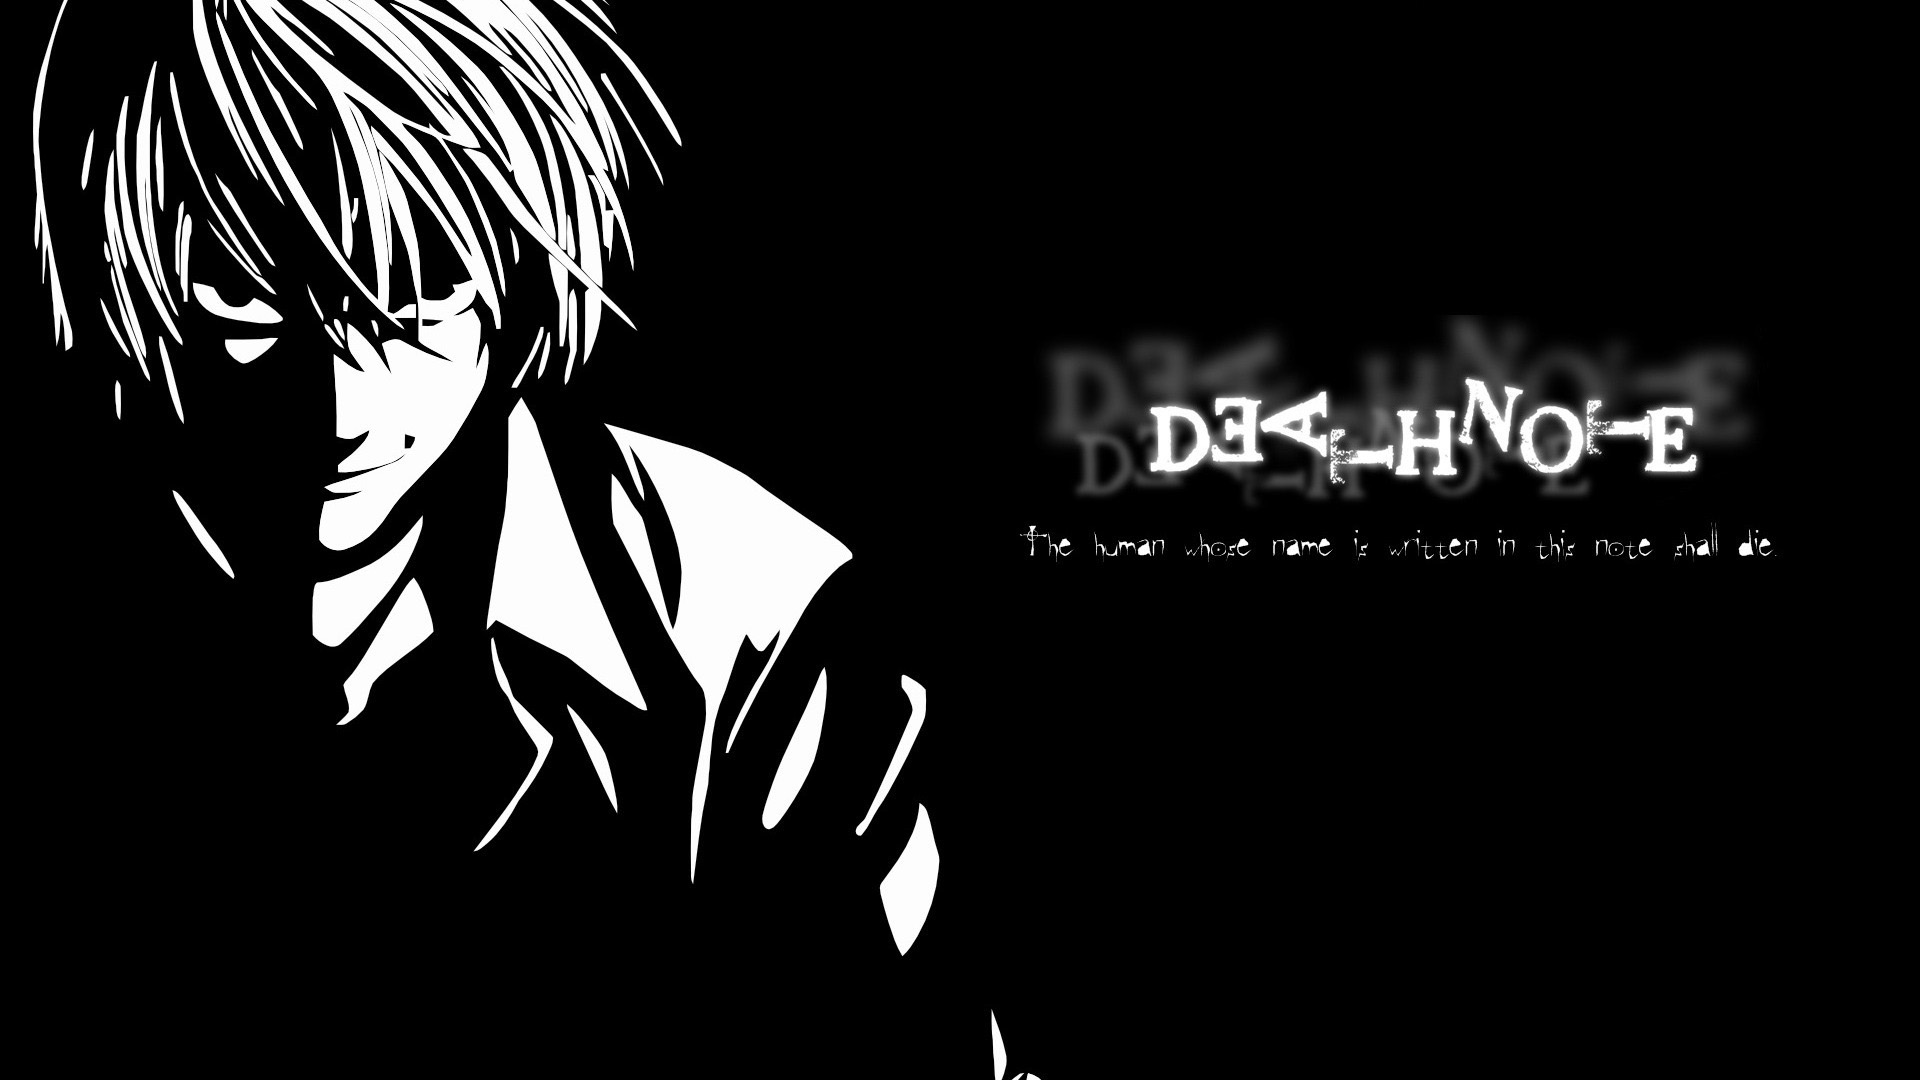 Death Note 4k Wallpaper: Death Note Wallpapers High Quality